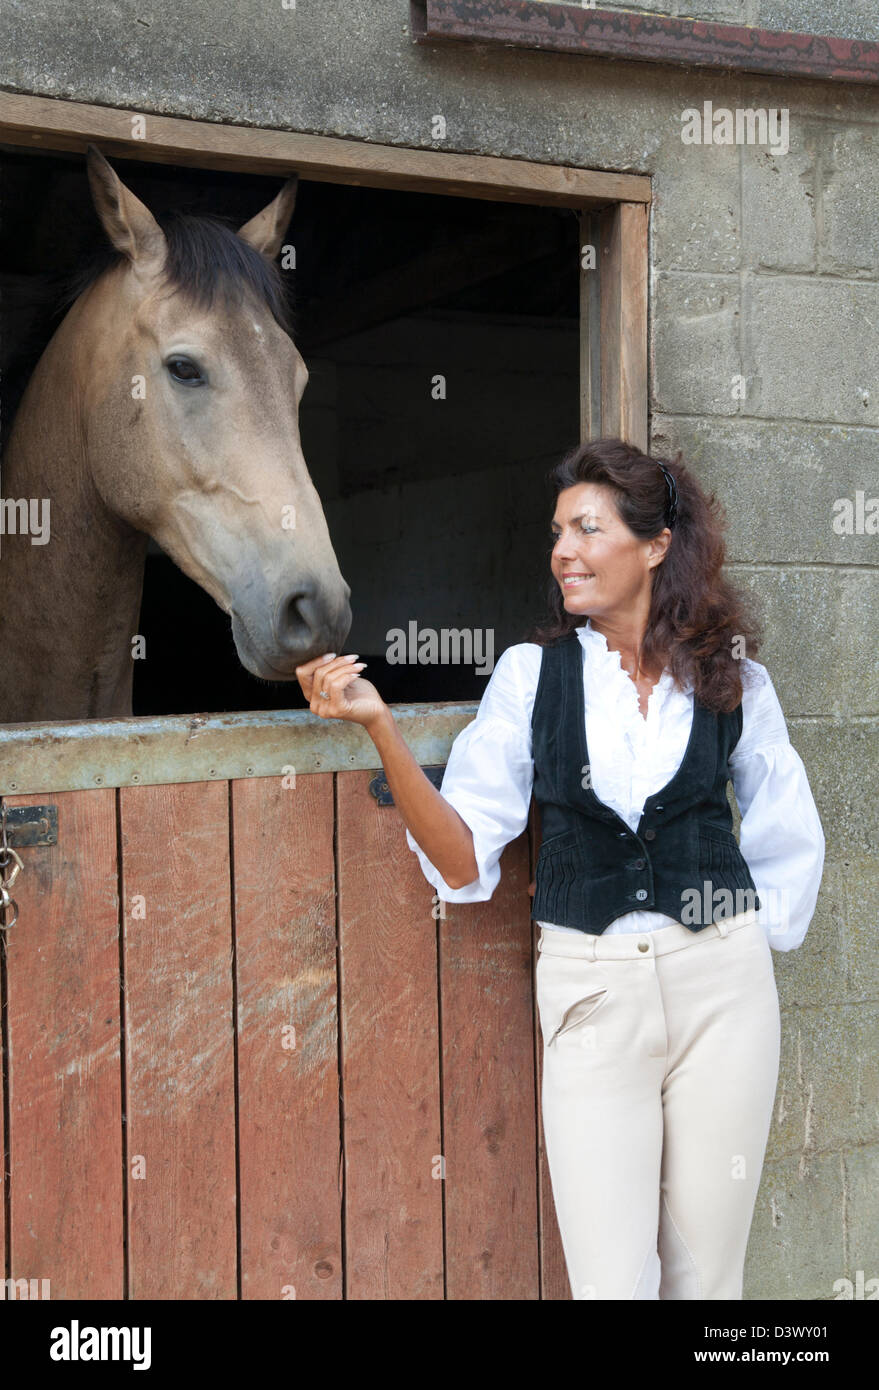 a mature woman in riding gear happily pets a horse in a cotswold